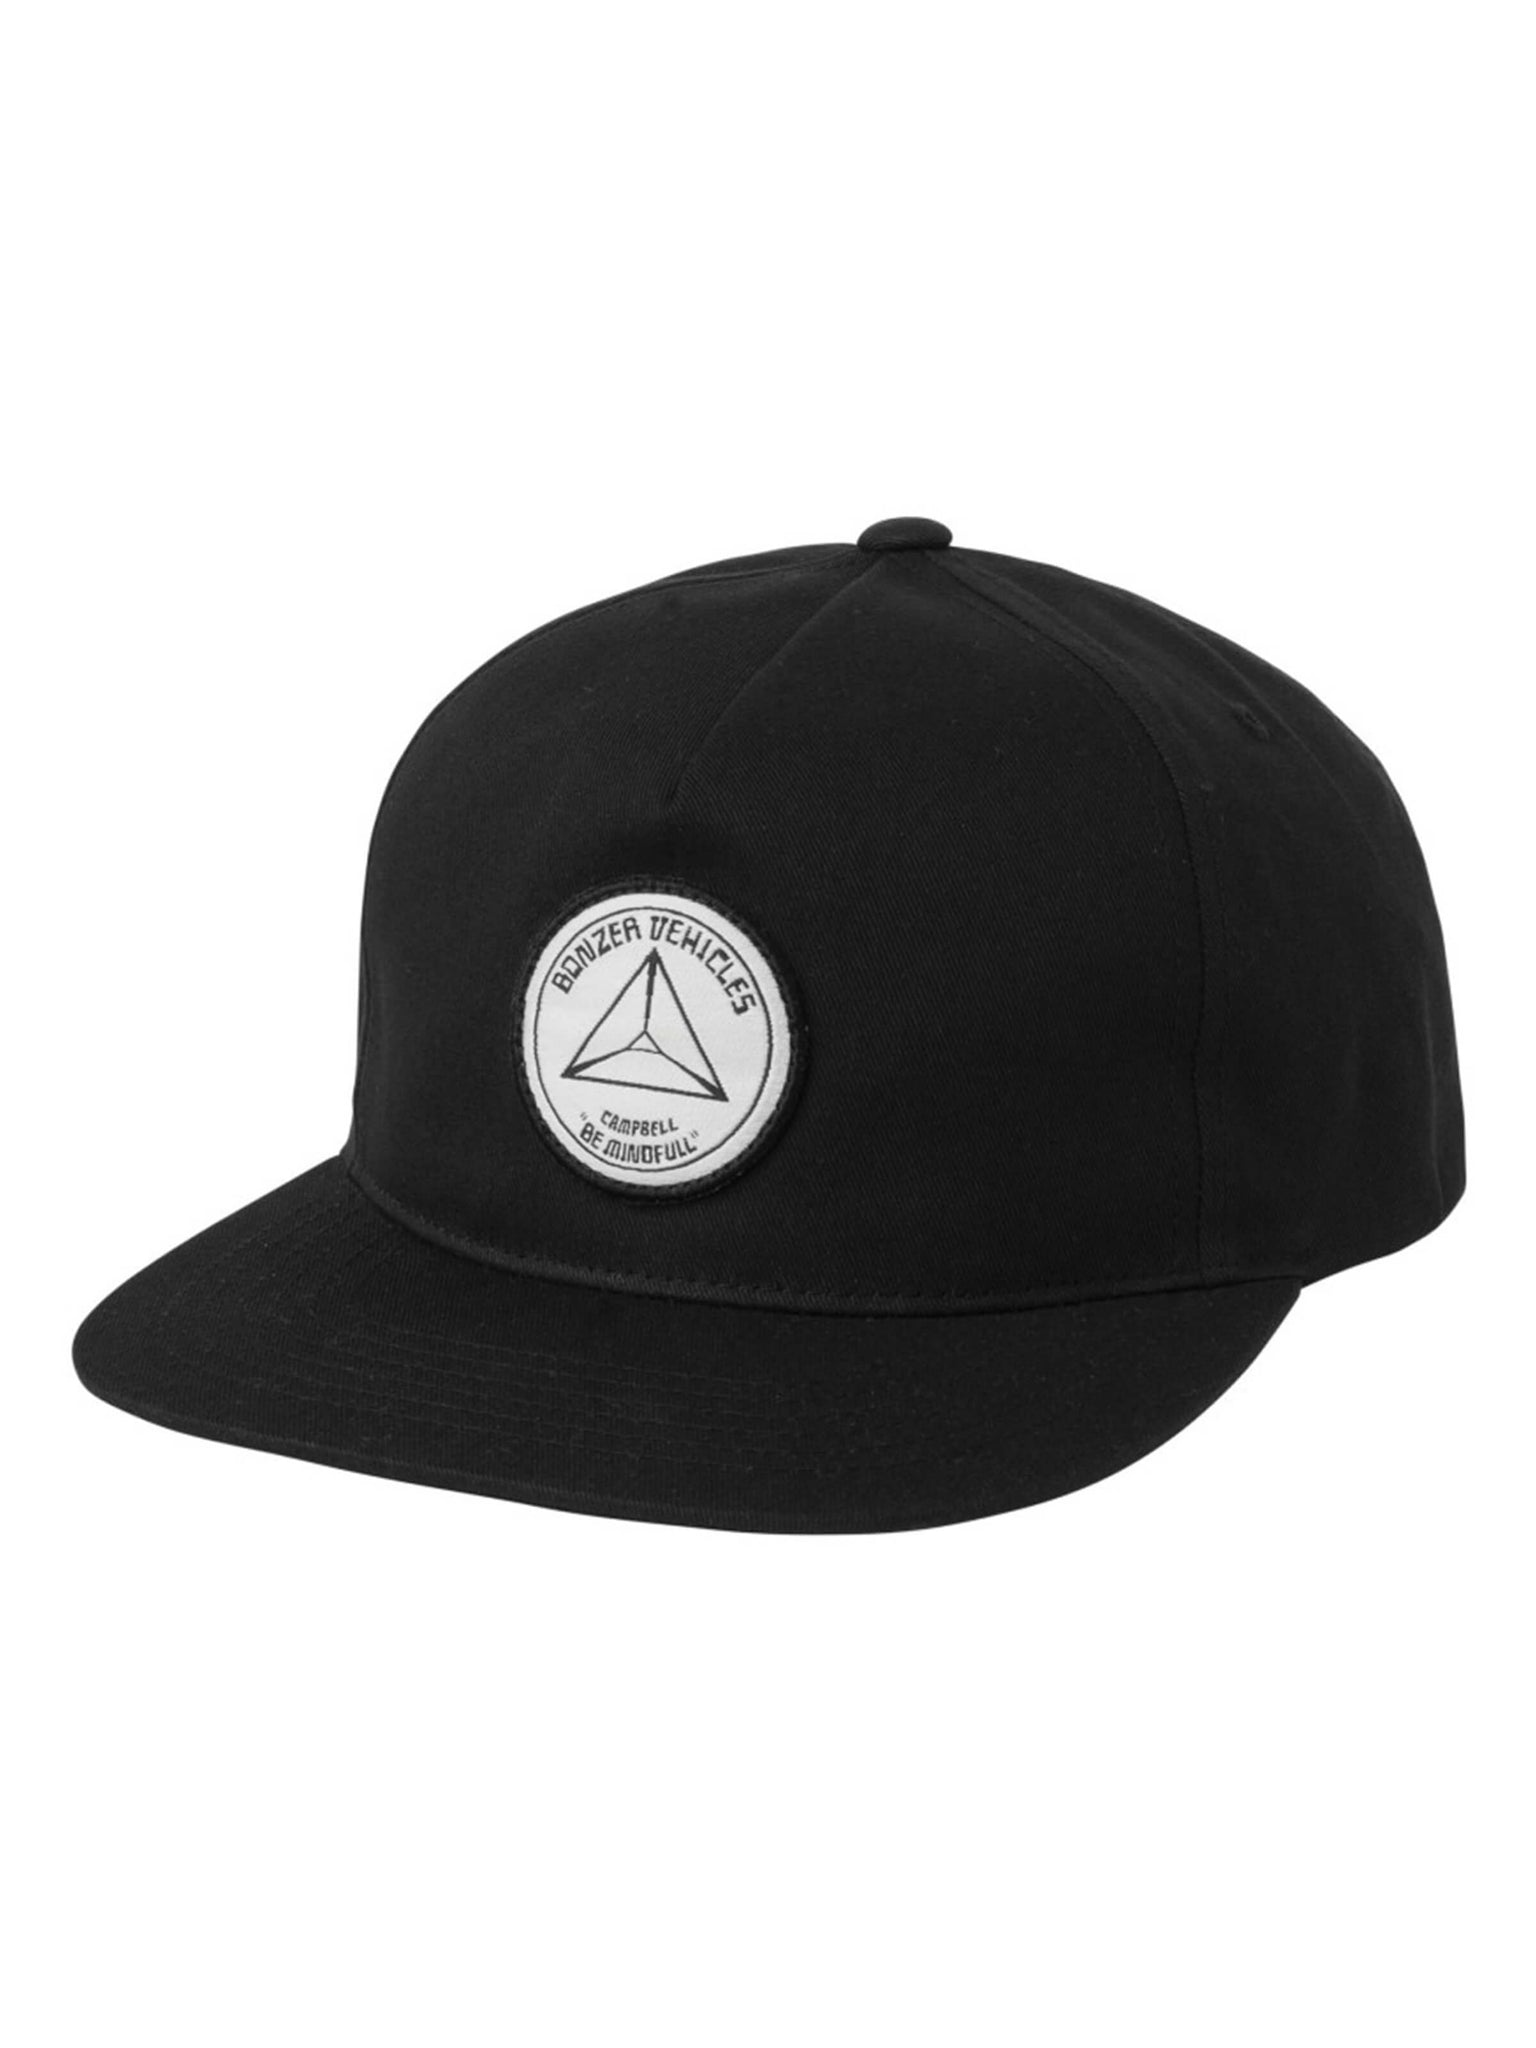 RVCA Campbell Bros Hat